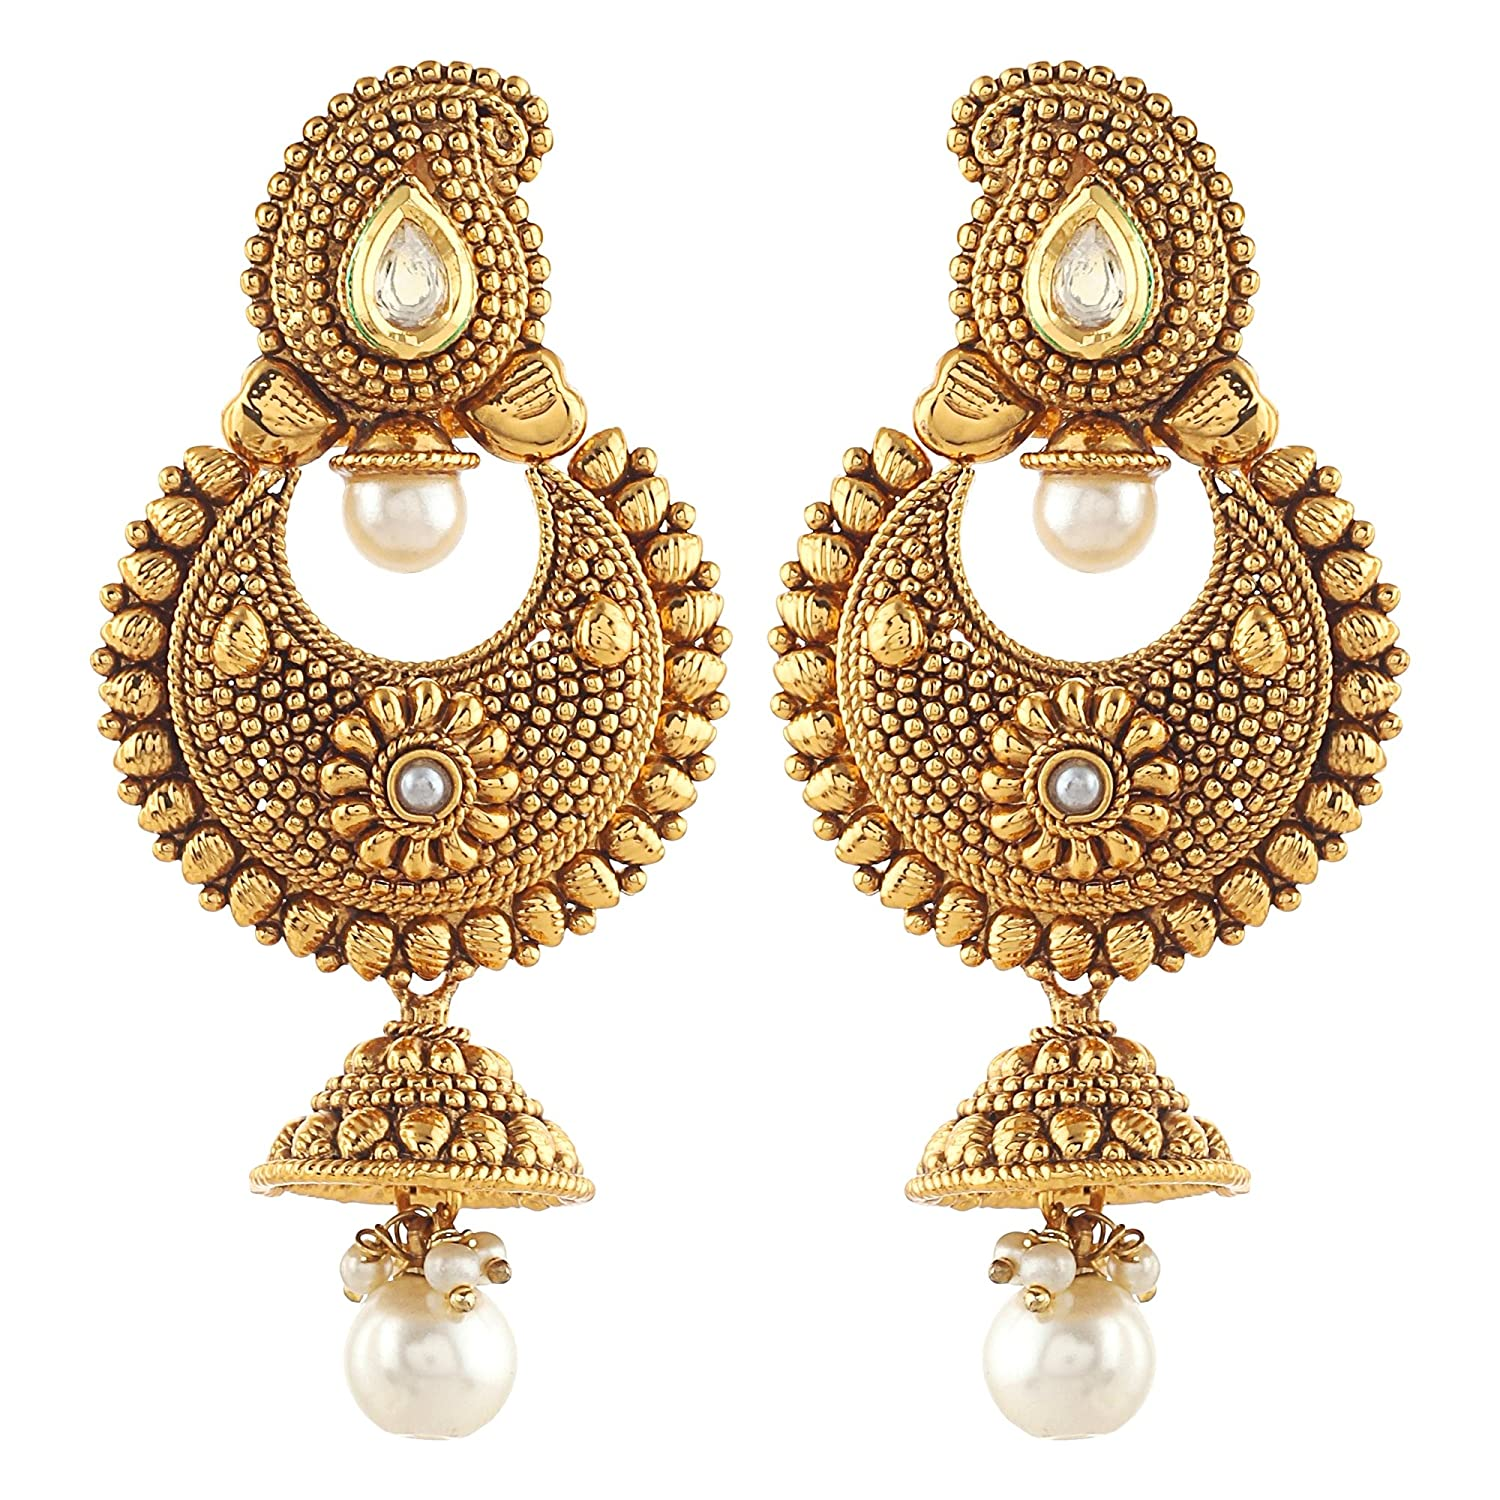 earrings skn copper metal india bali dp daily buy at for wear online prices women jewellery low ear in amazon plated girls jhumki gold